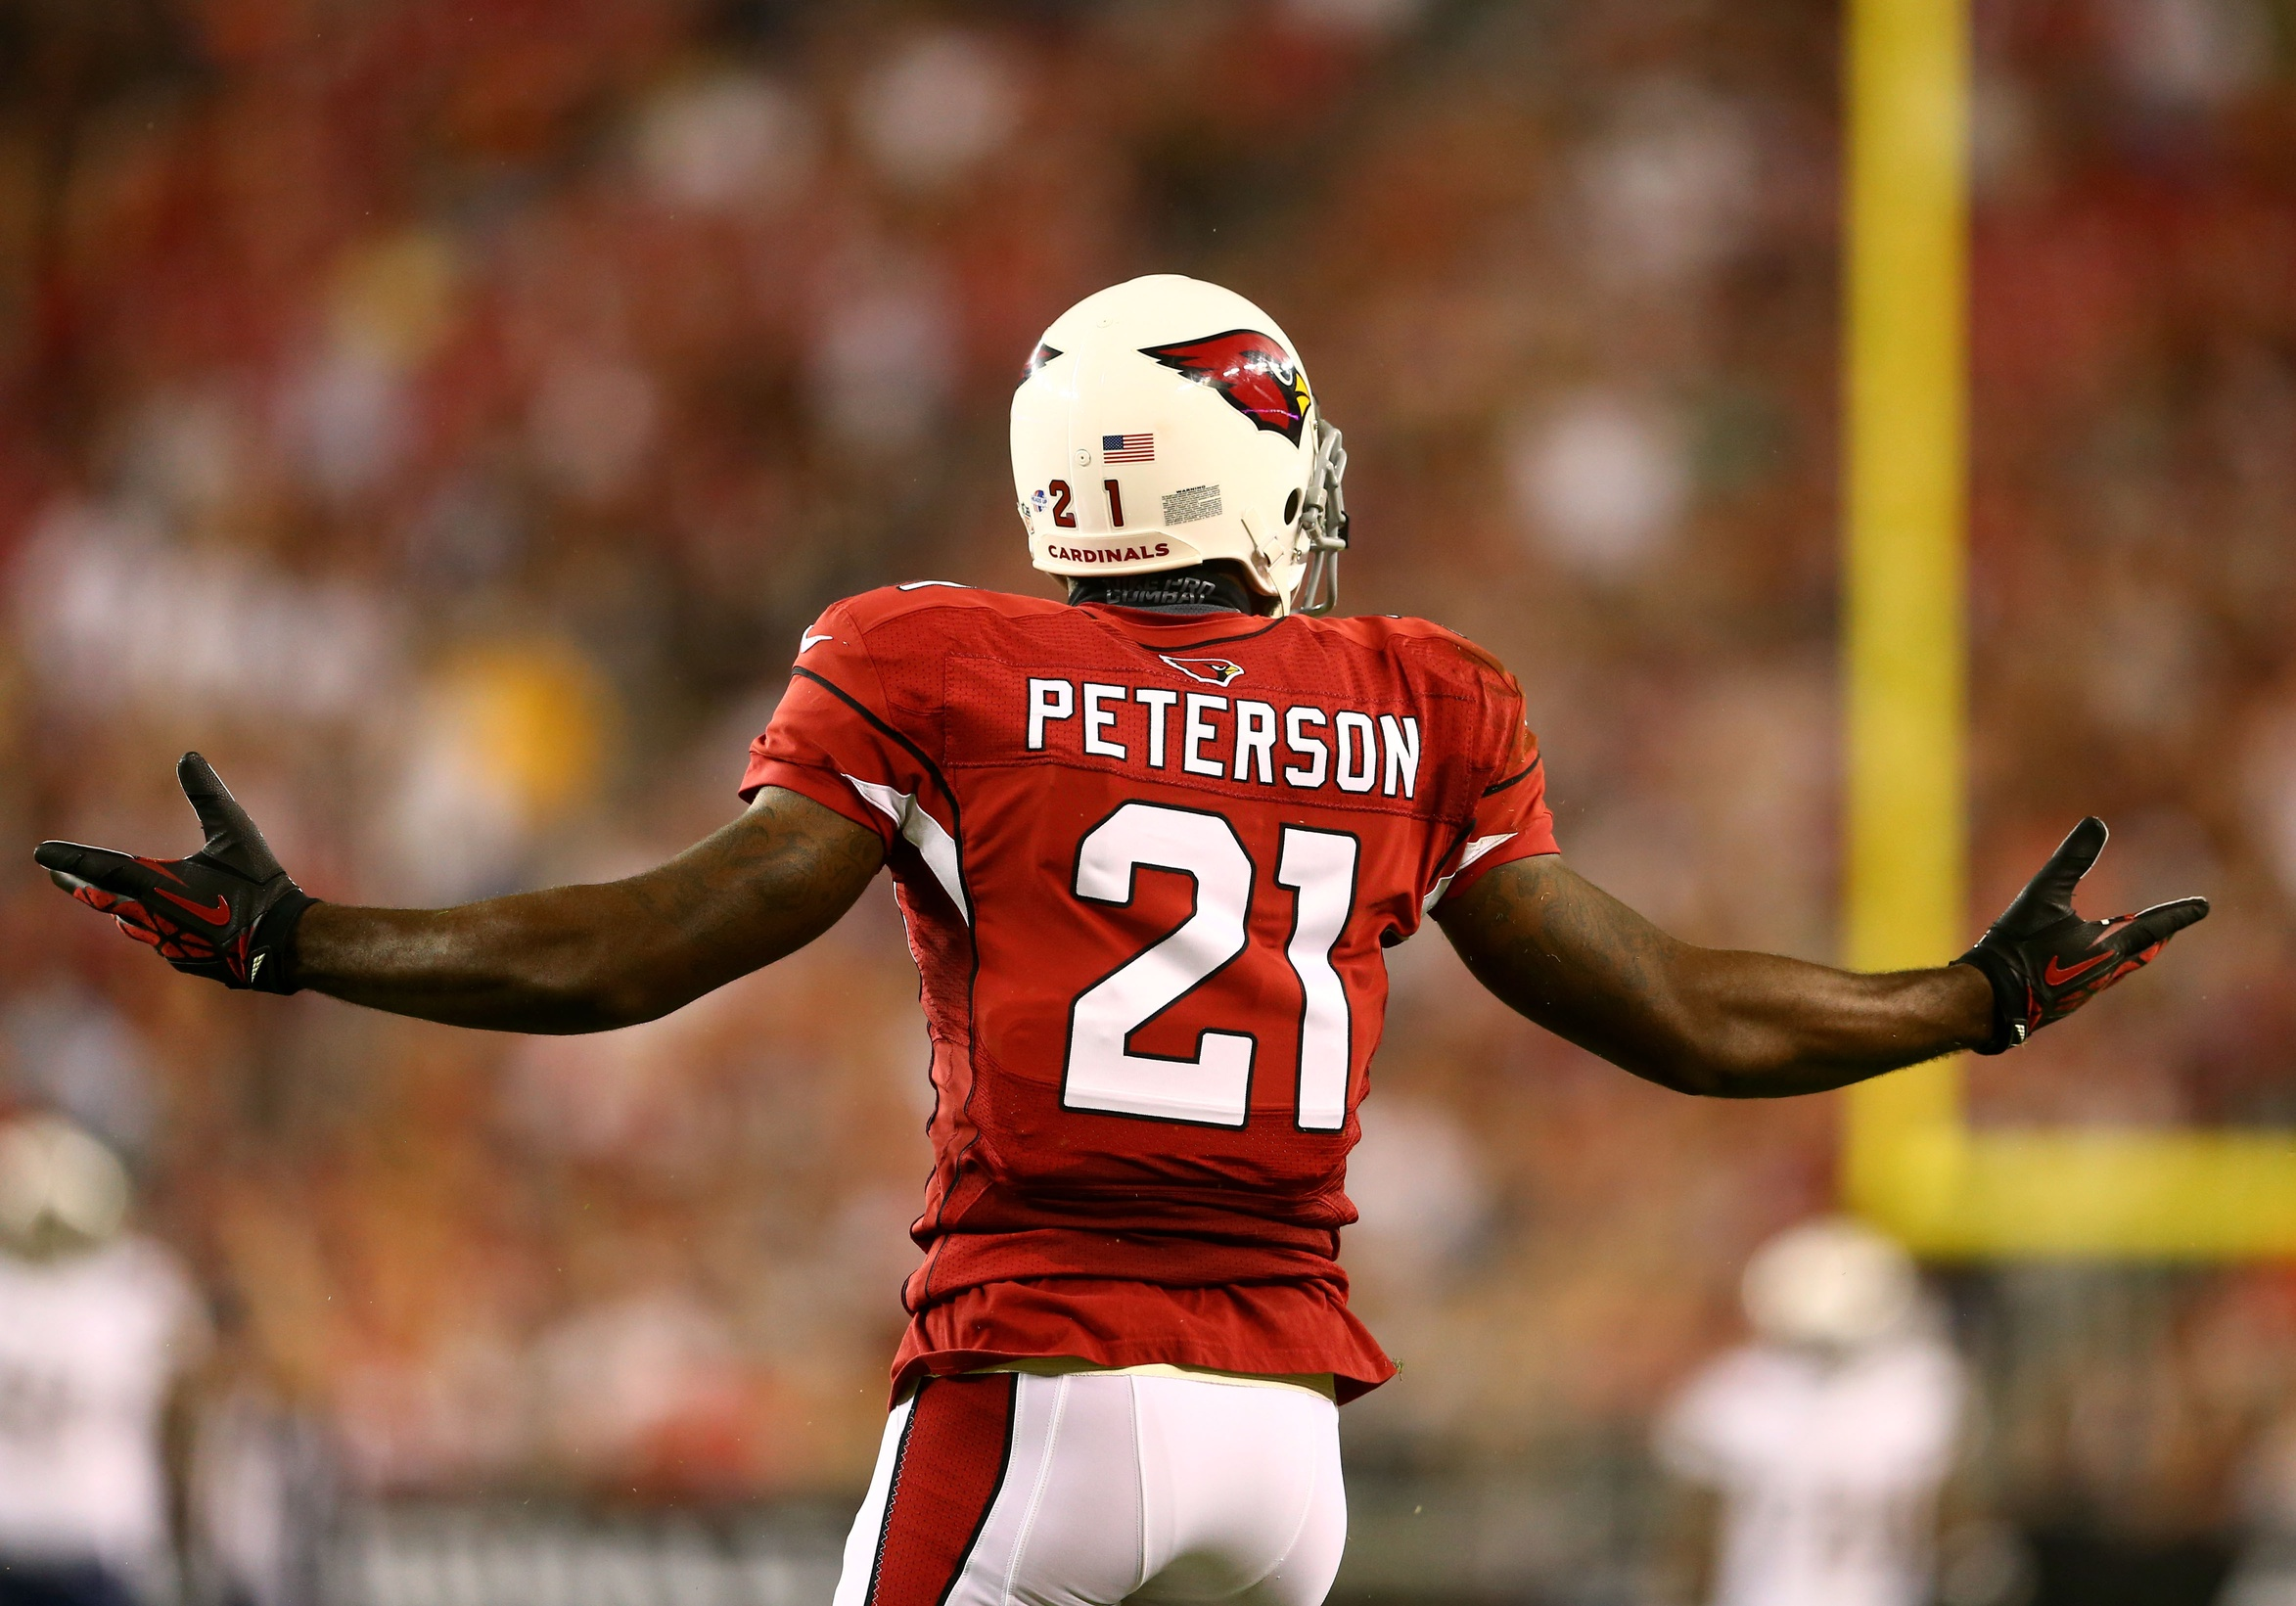 Patrick Peterson Wallpapers High Quality Download 2346x1641